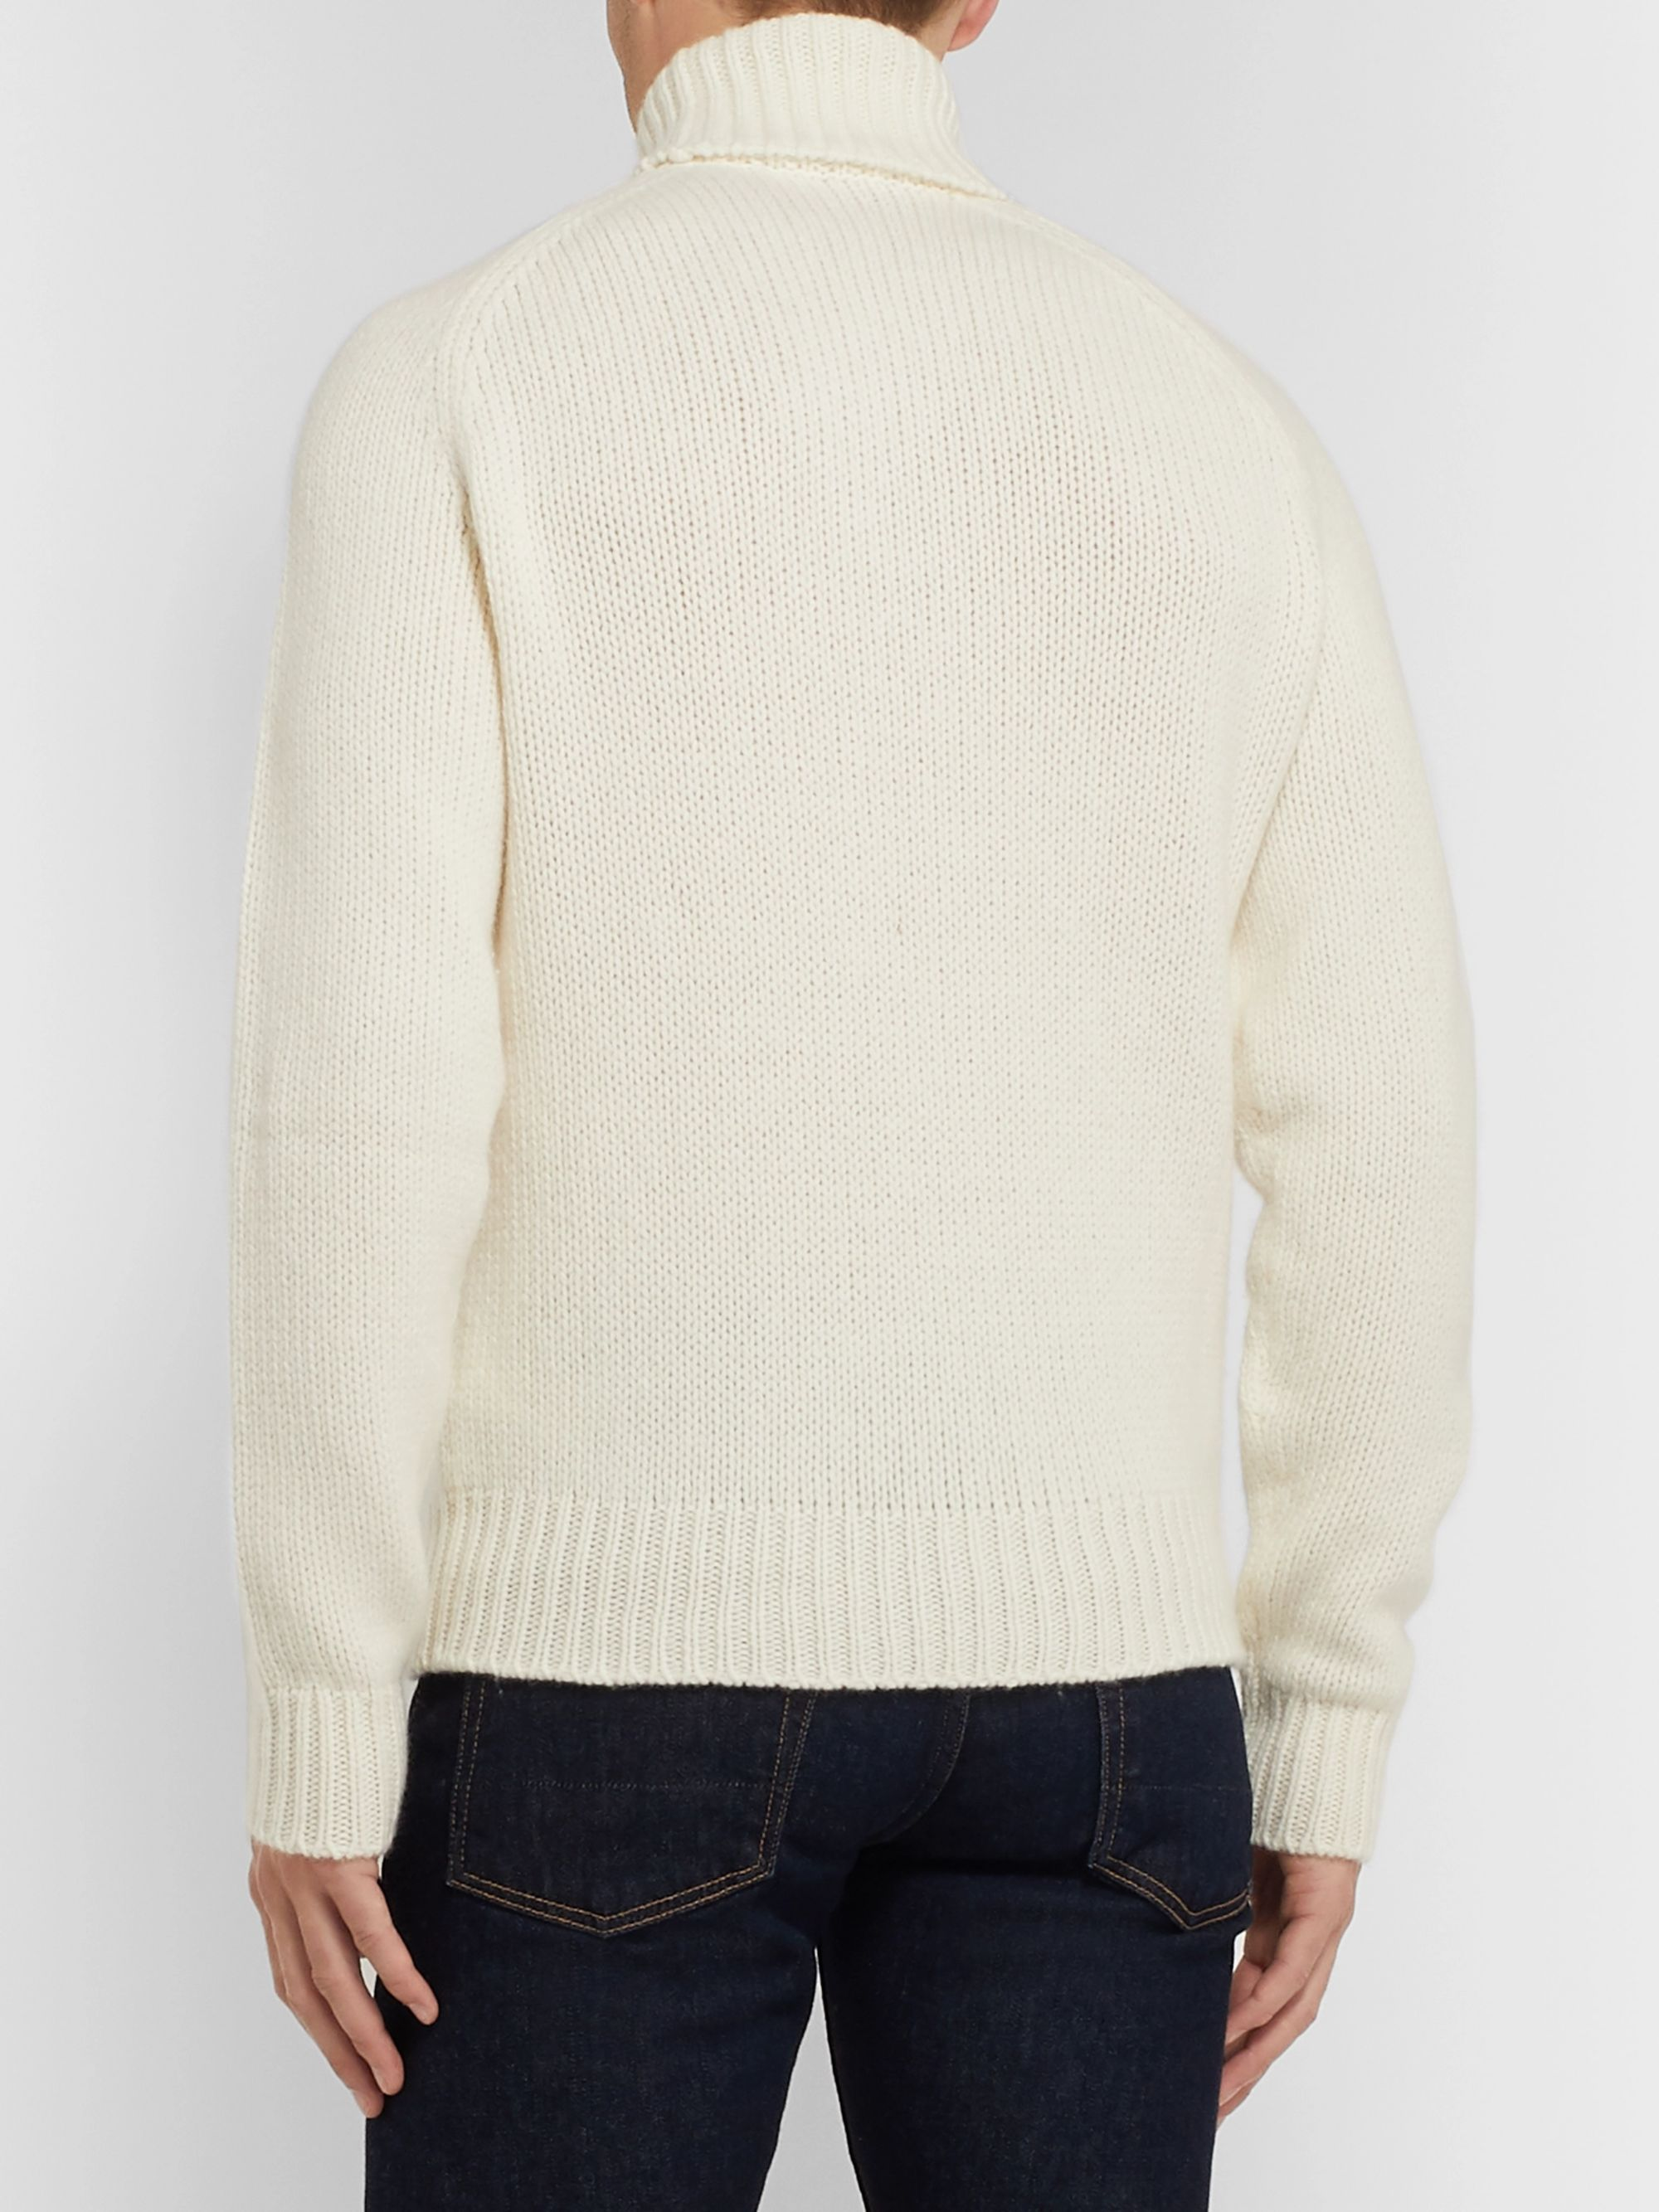 Ralph Lauren Purple Label Wool and Cashmere-Blend Rollneck Sweater